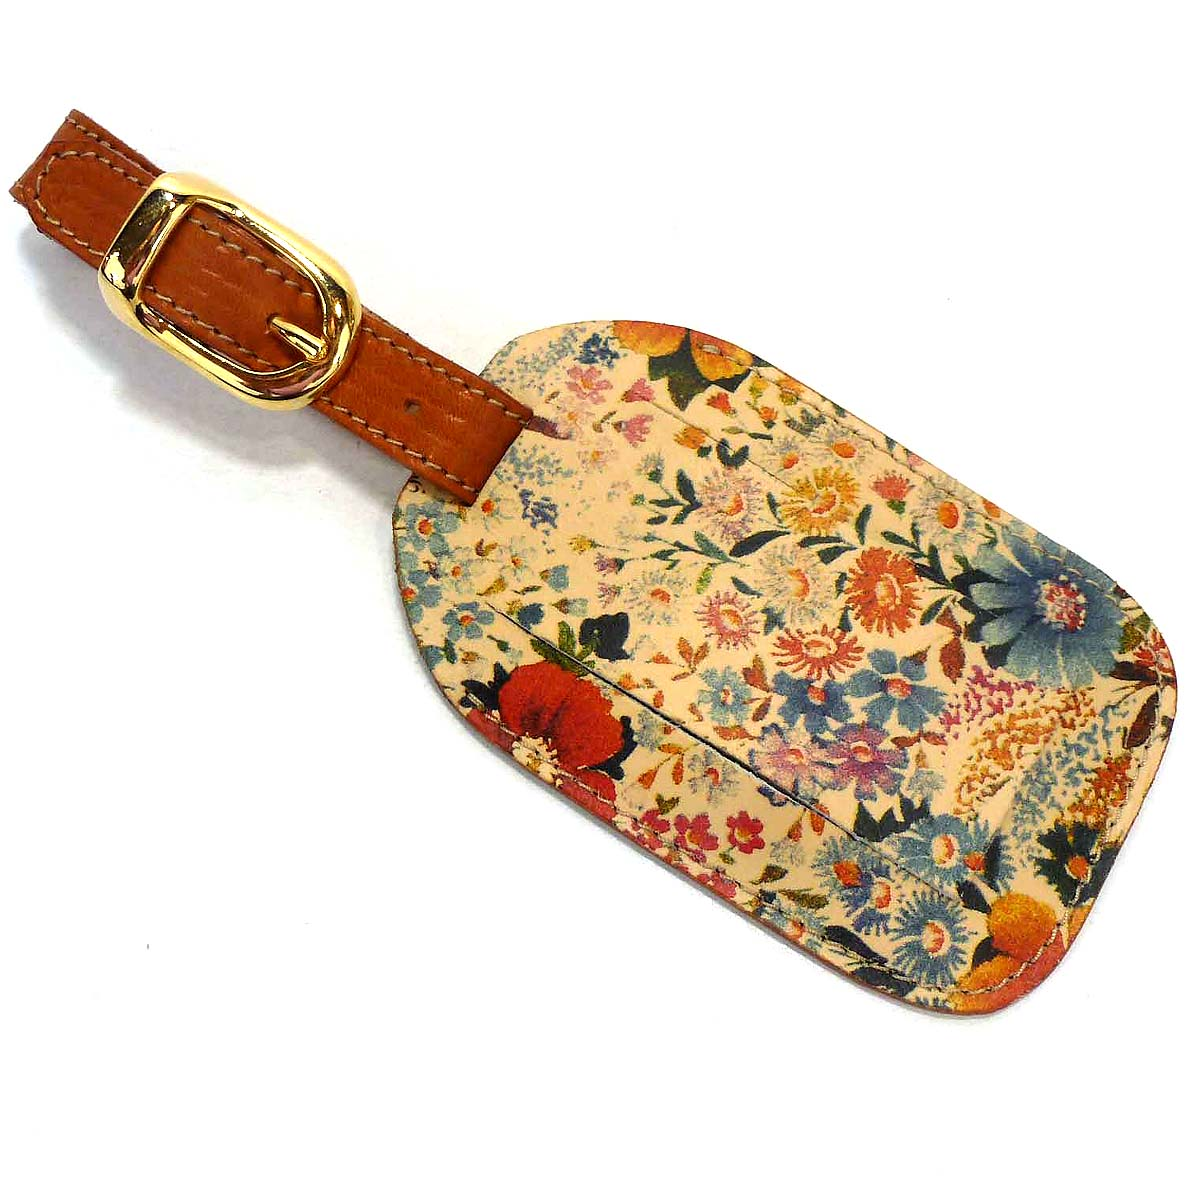 1837 luggage tags by Bottega Fiorentina